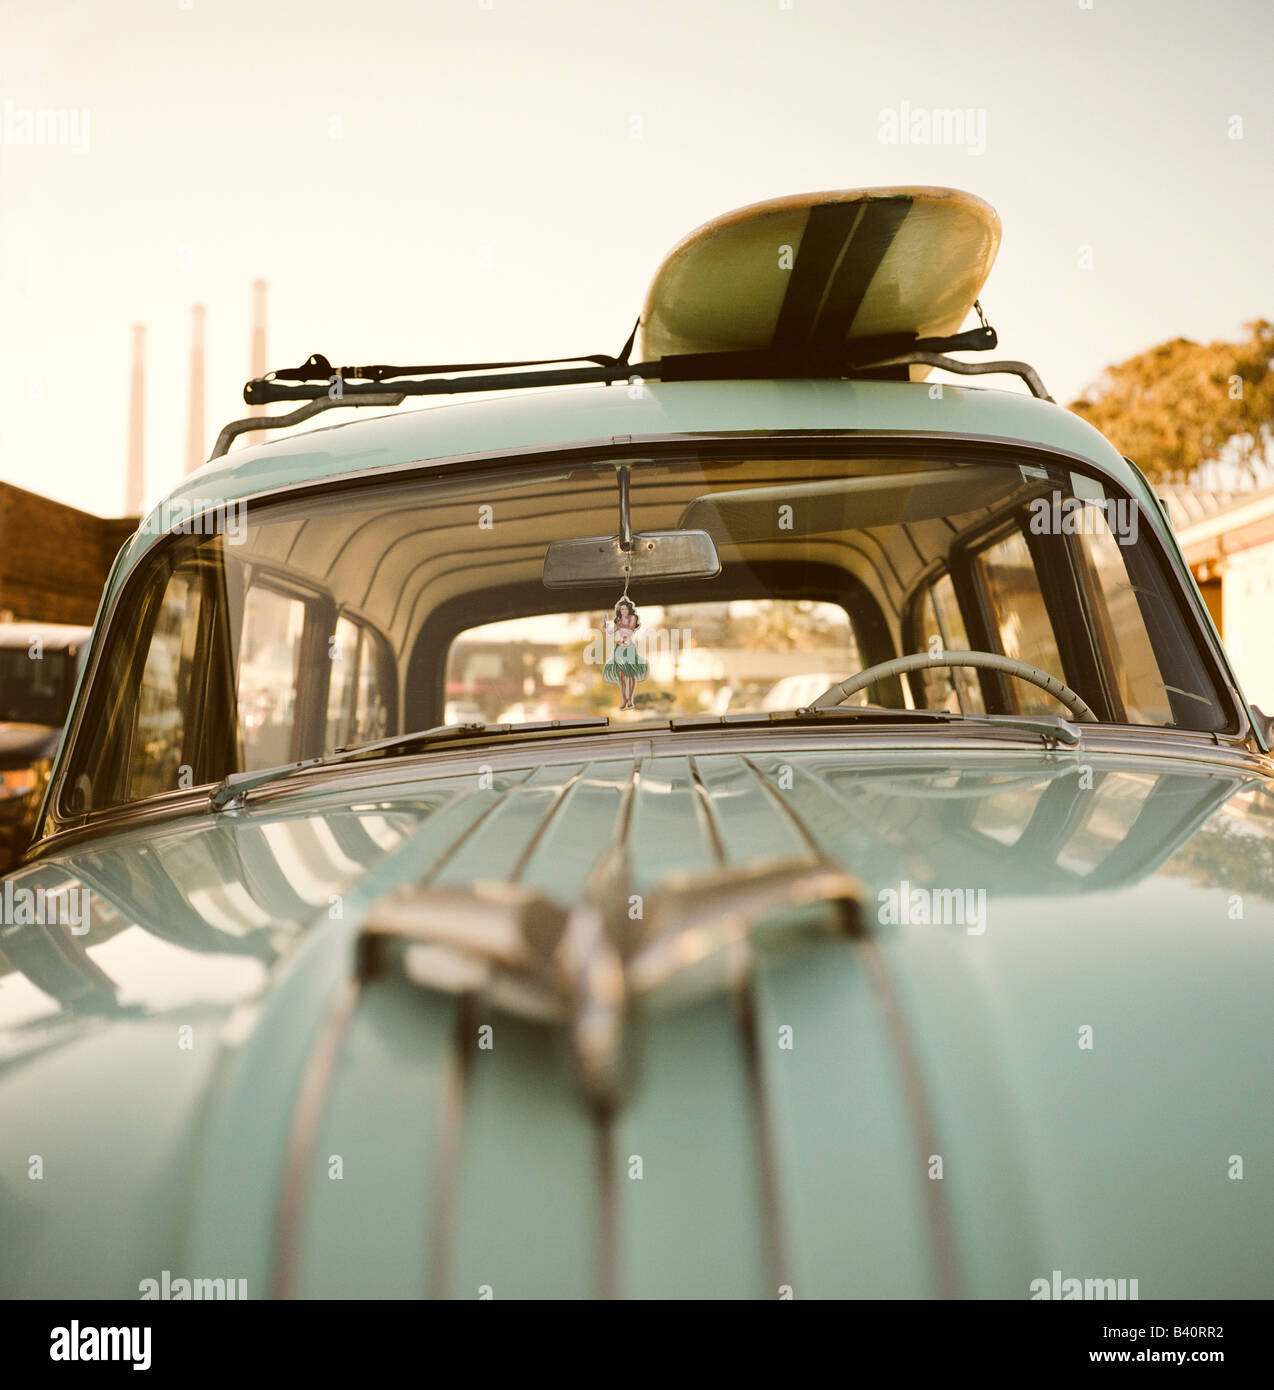 A vintage Pontiac stationwagon with a surfboard on top, parked along the Embarcadero, Morro Bay, California. - Stock Image